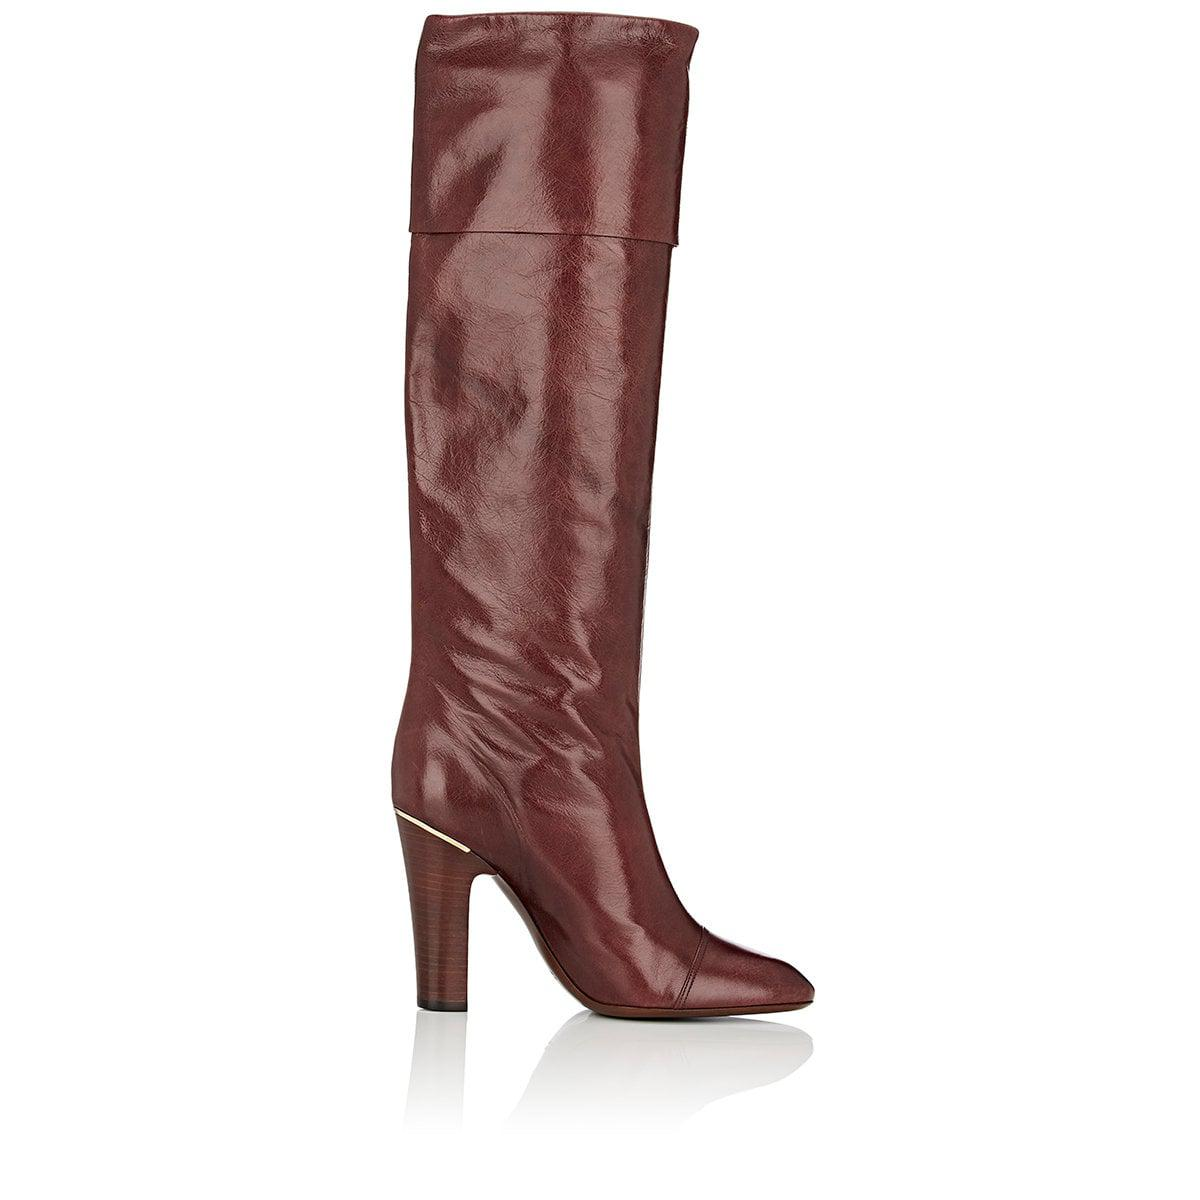 Marc Jacobs Ann Leather Knee Boots sale extremely 4yFftf6